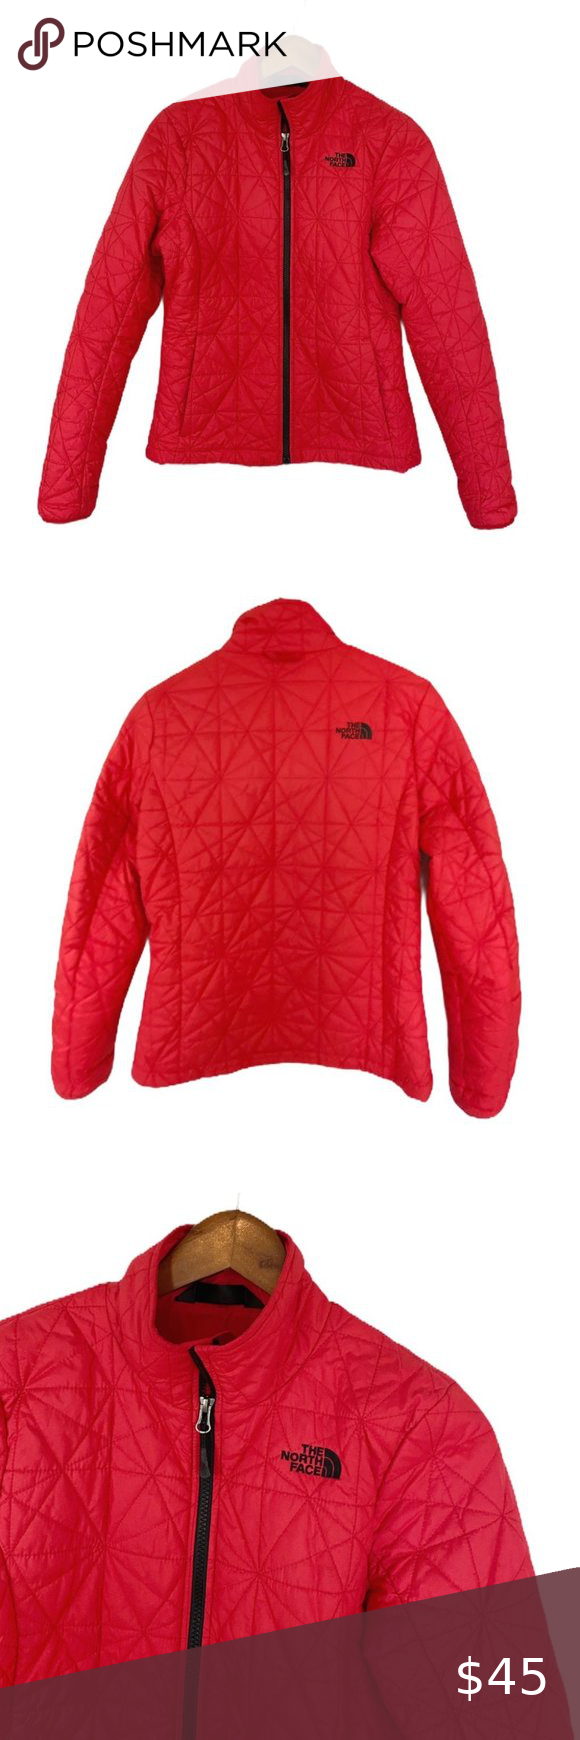 The North Face Quilted Lightweight Packable Jacket Packable Jacket Jackets Jackets For Women [ 1740 x 580 Pixel ]